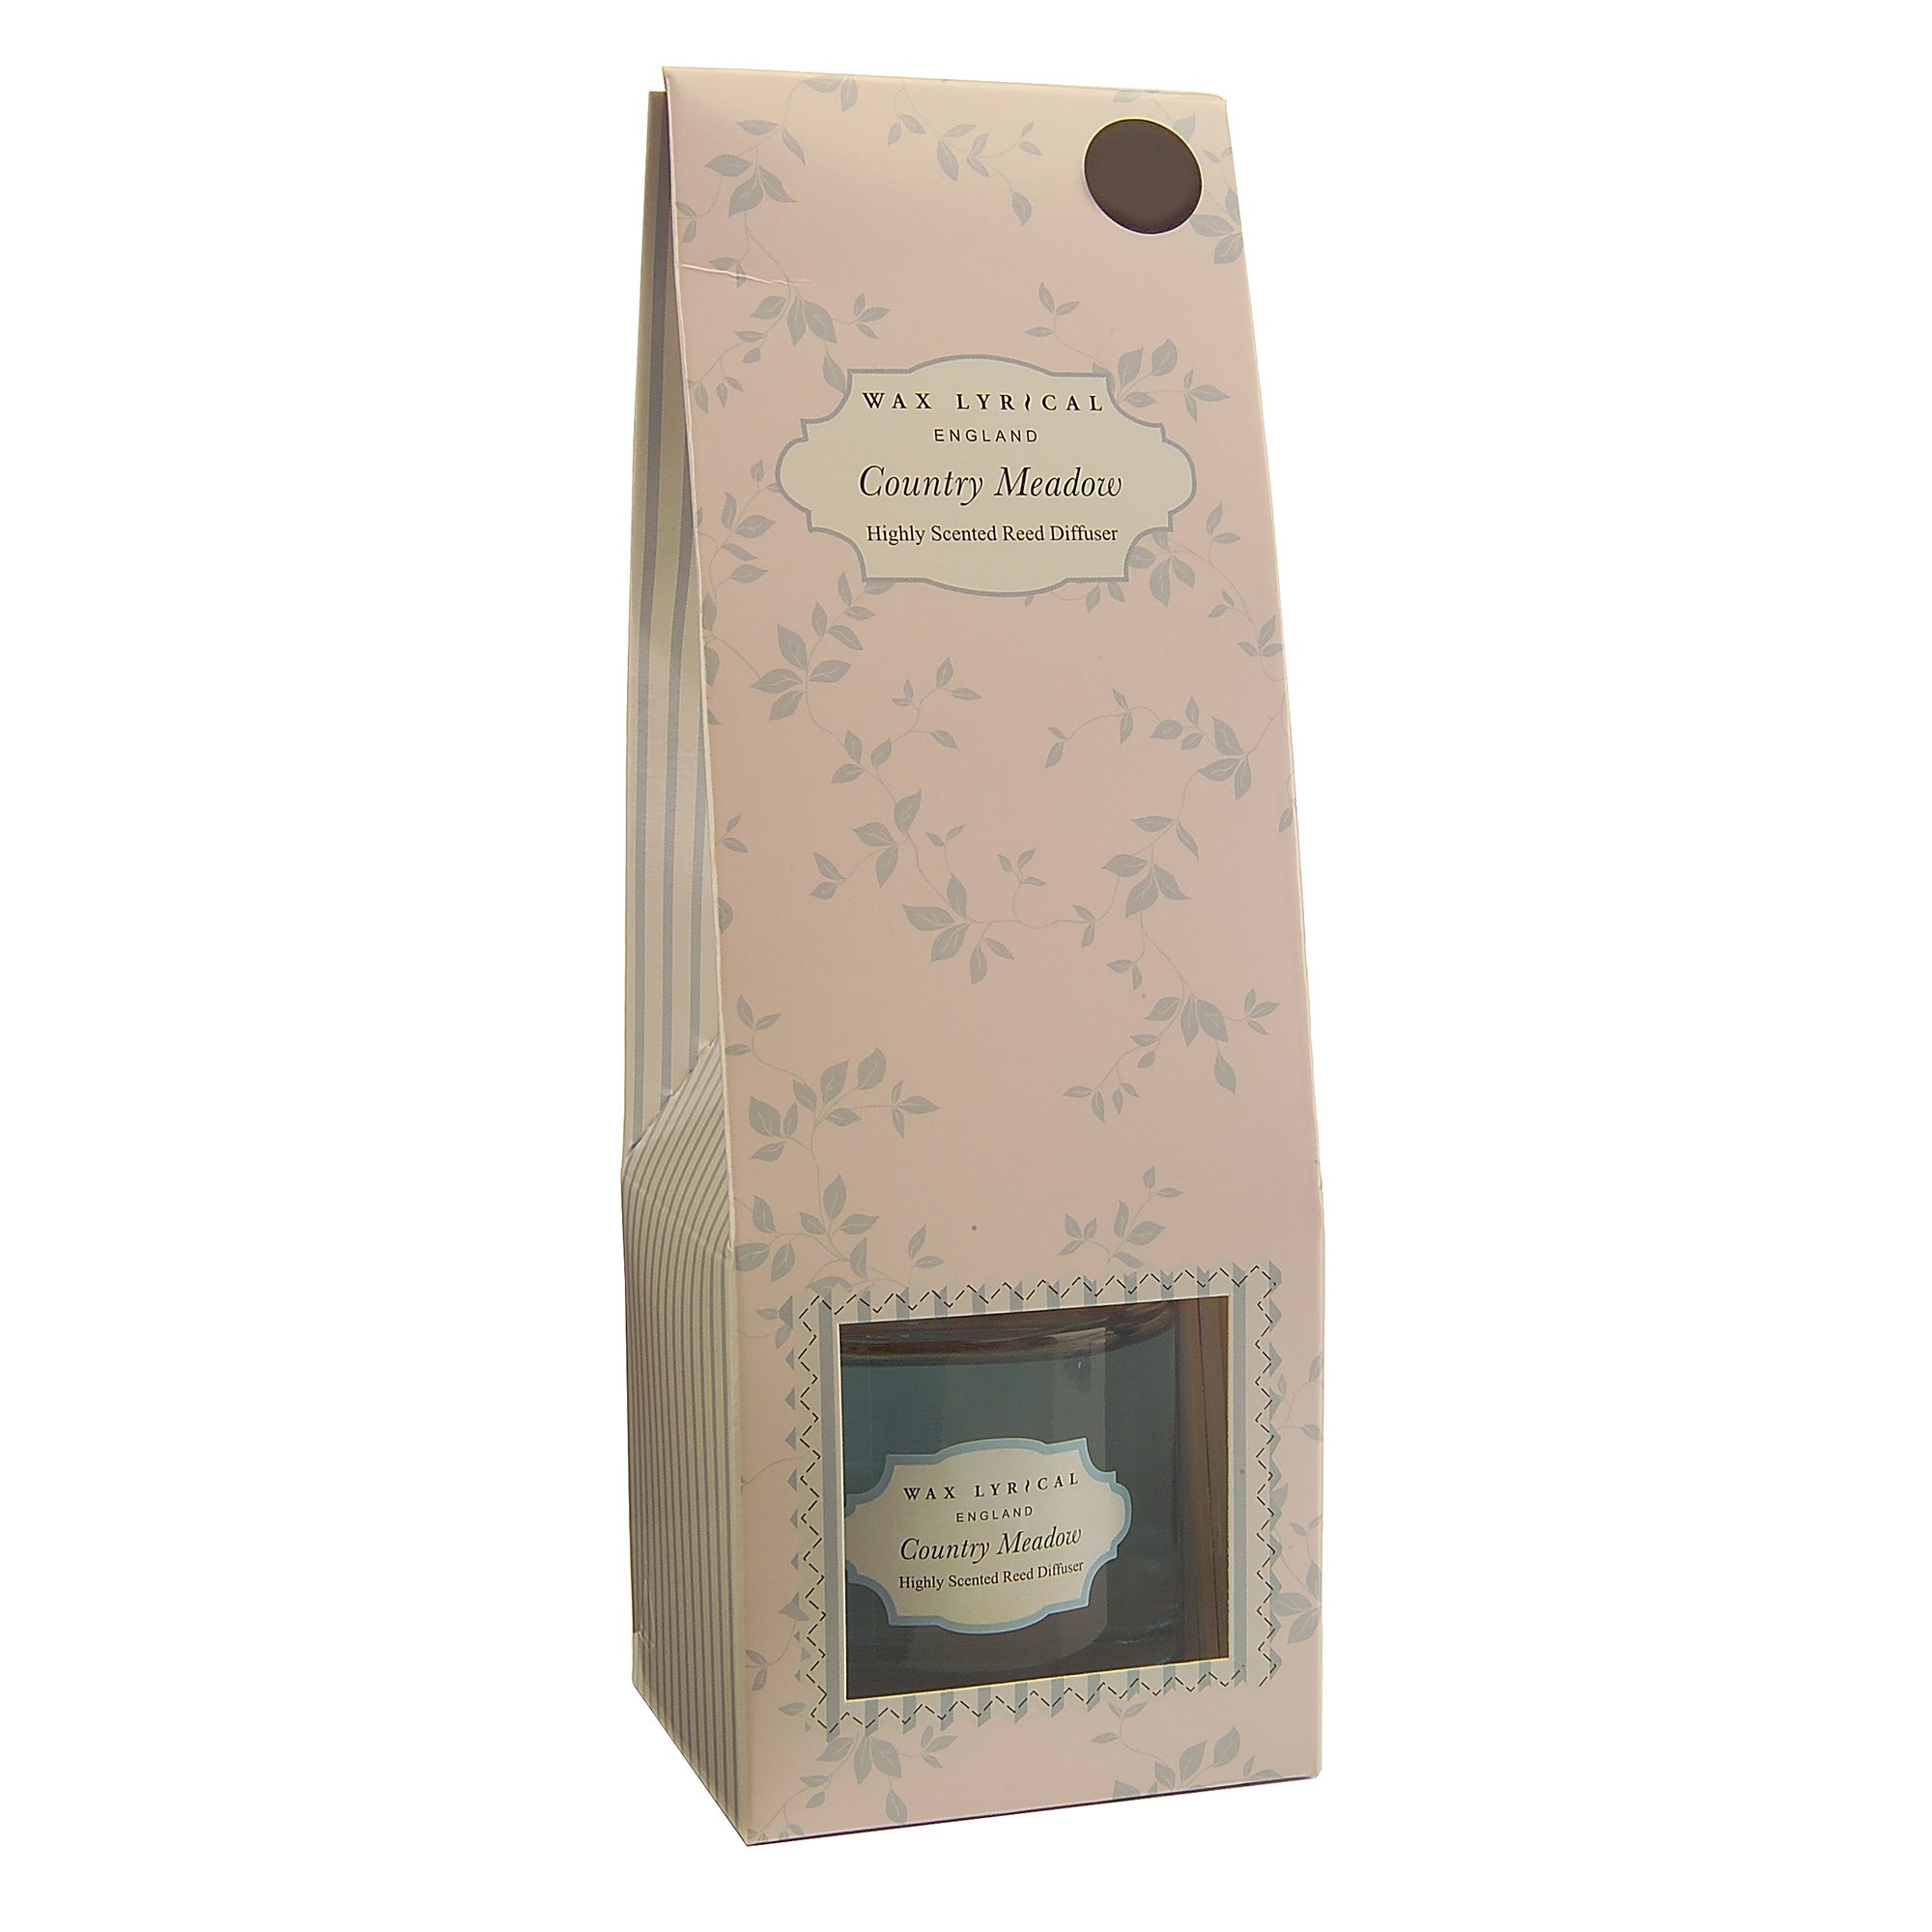 Wax Lyrical Country Meadow 200ml Reed Diffuser